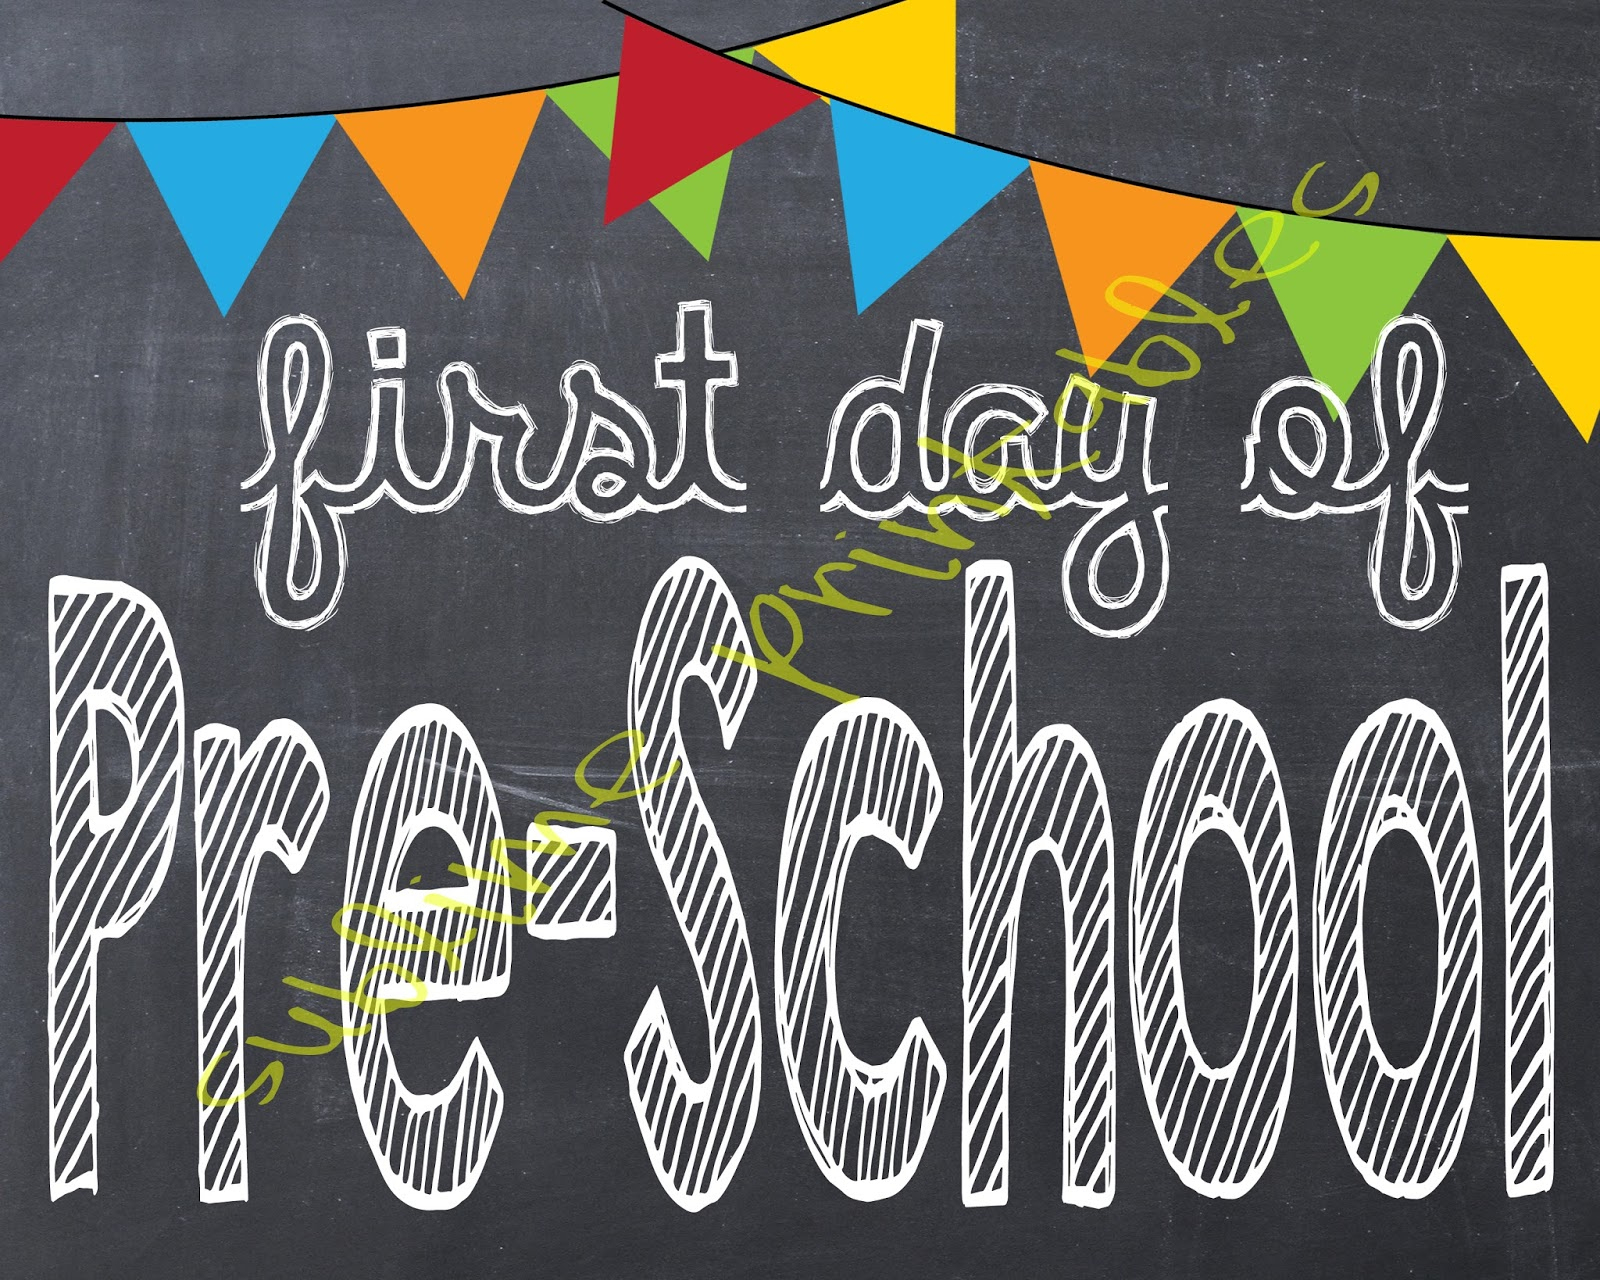 Sublime Printables: First Day Of School Printable - My First Day Of Kindergarten Free Printable